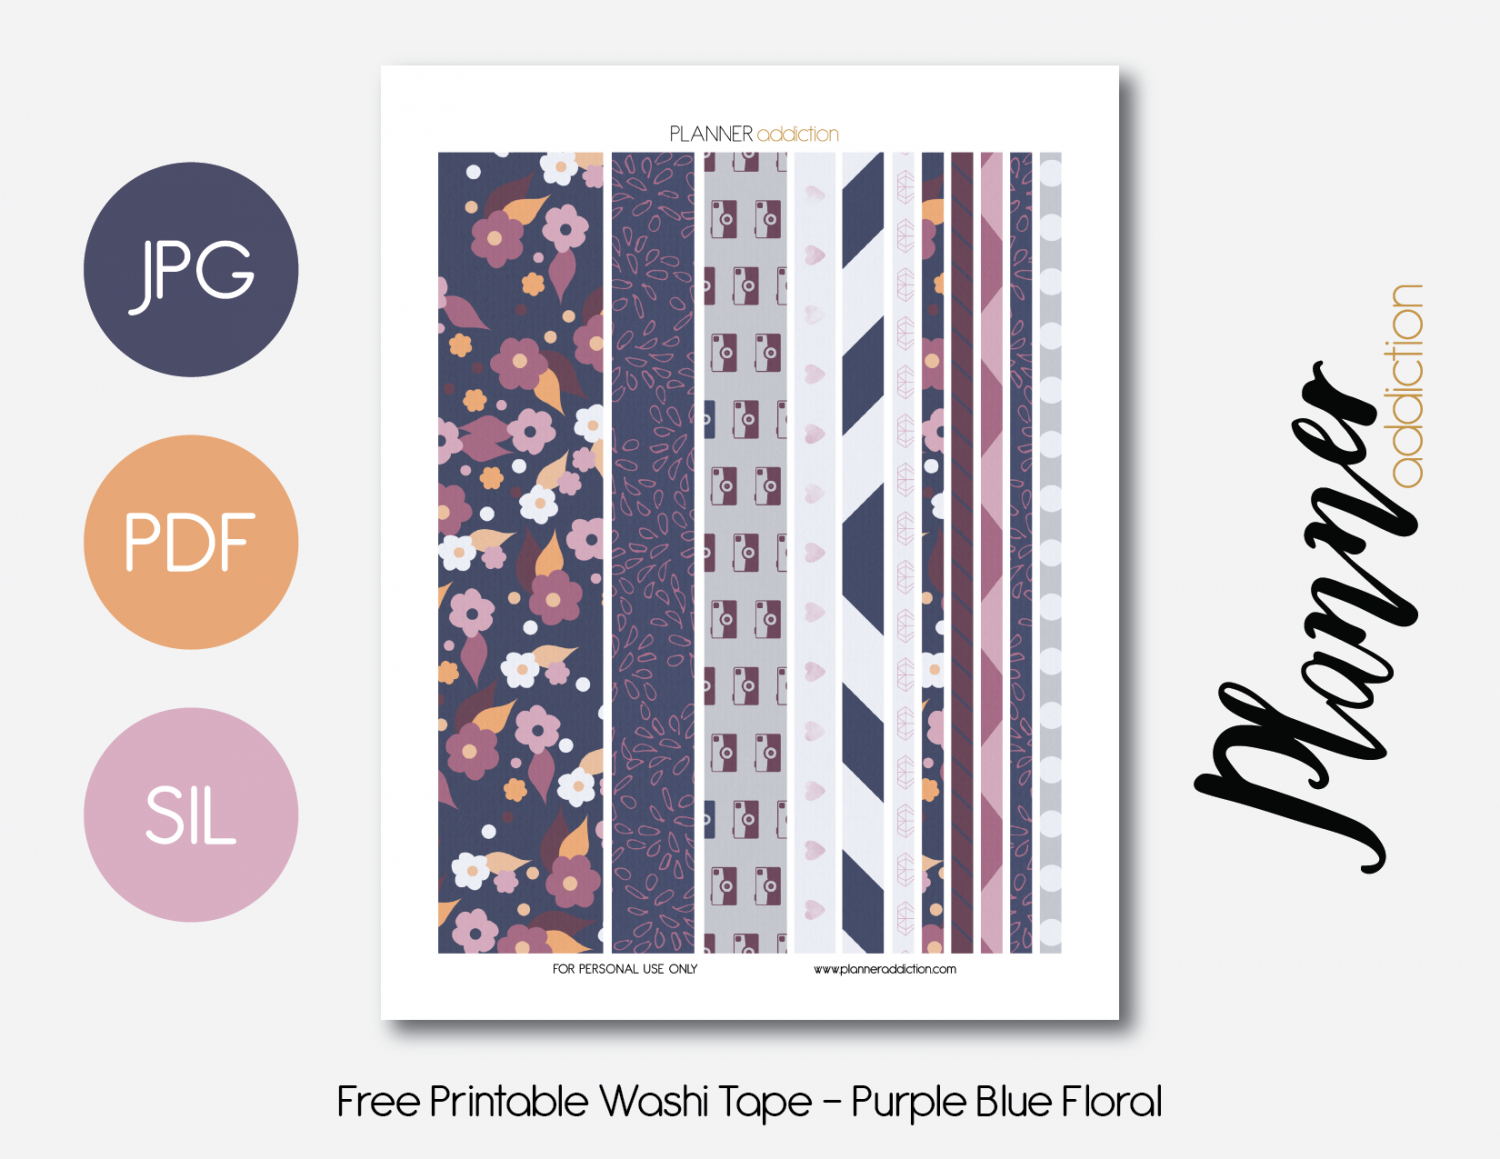 Free Printable Washi Tape - Purple Blue Floral | Planner | Washi - Free Printable Washi Tape